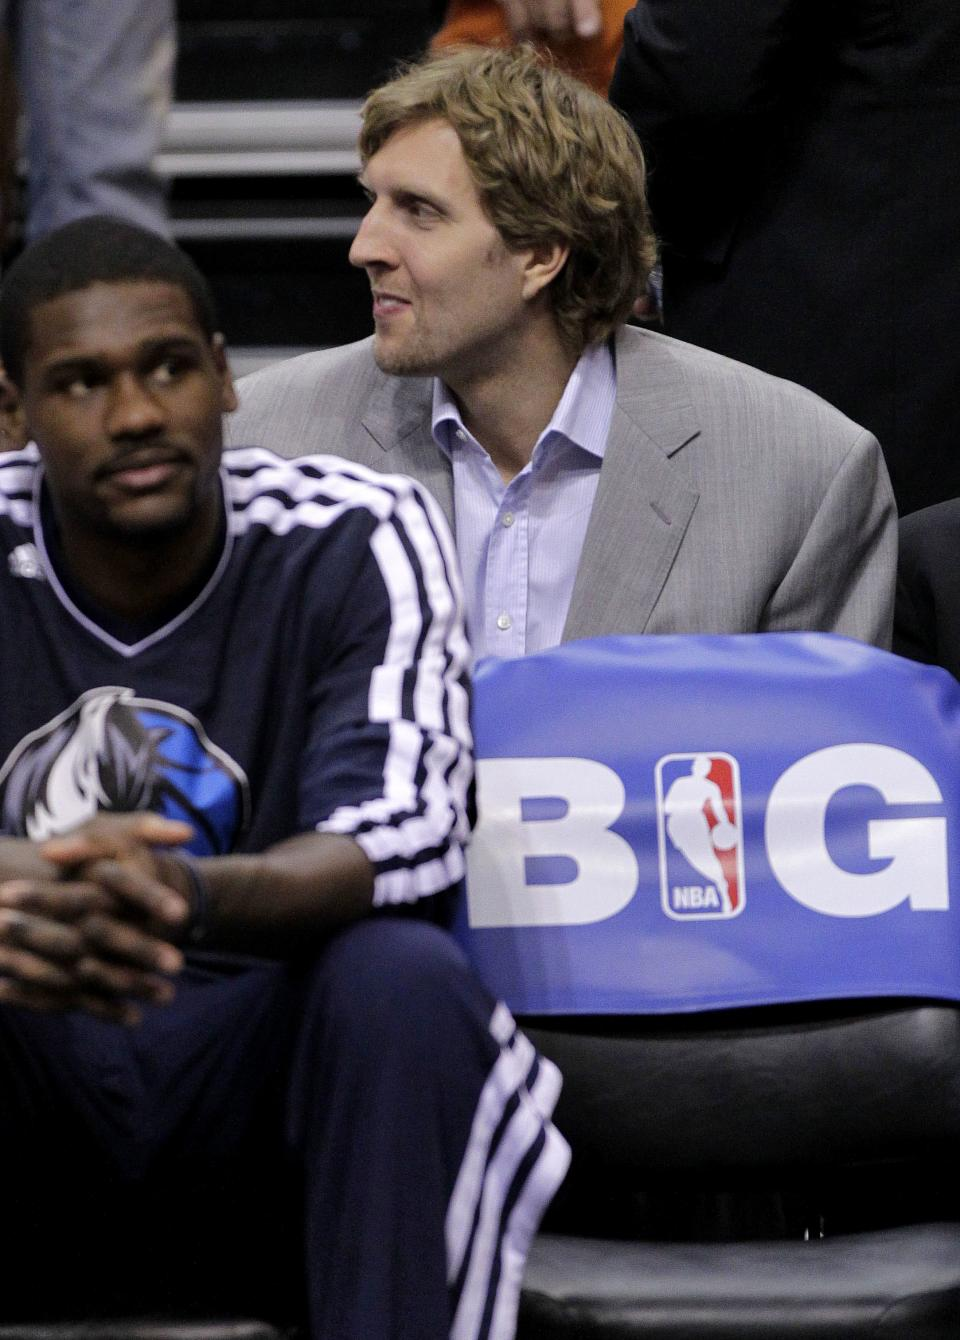 Dallas Mavericks' Dirk Nowitzki watches from the bench against the Phoenix Suns during the second half of an NBA basketball game, Thursday, Dec. 6, 2012, in Phoenix. (AP Photo/Matt York)